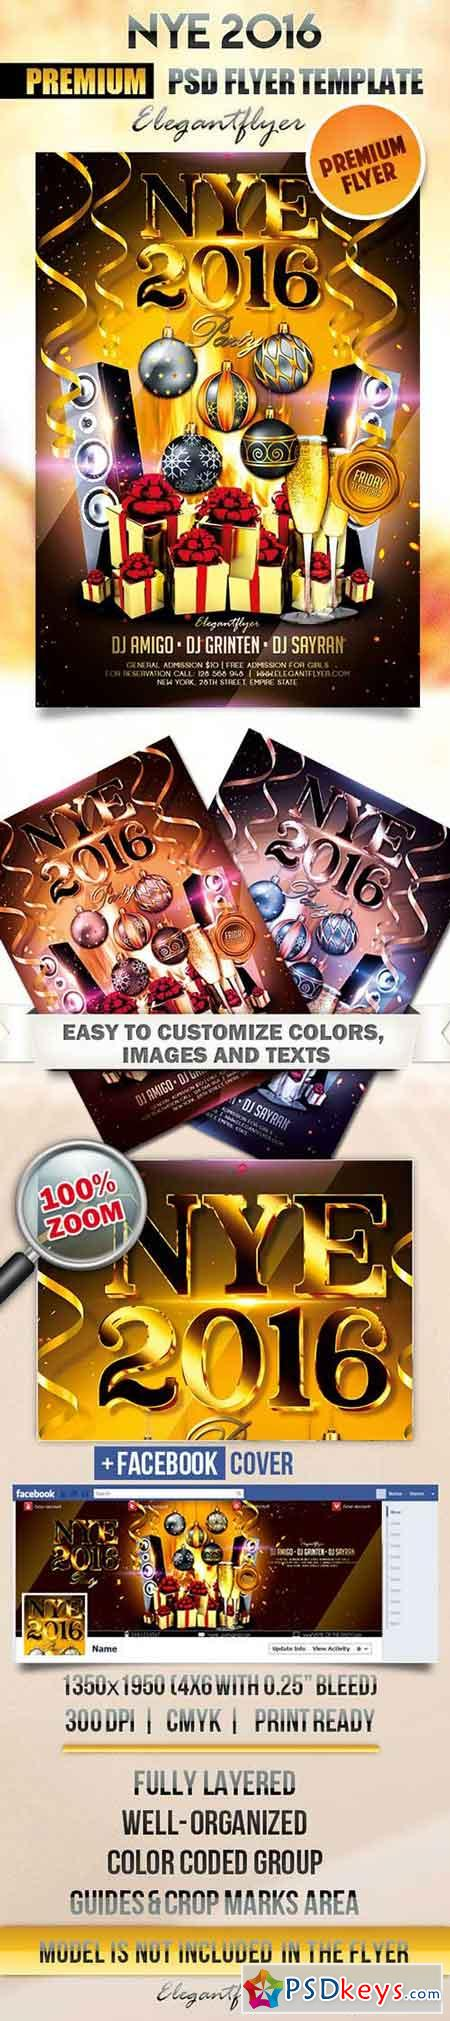 NYE 2016 Flyer PSD Template + Facebook Cover